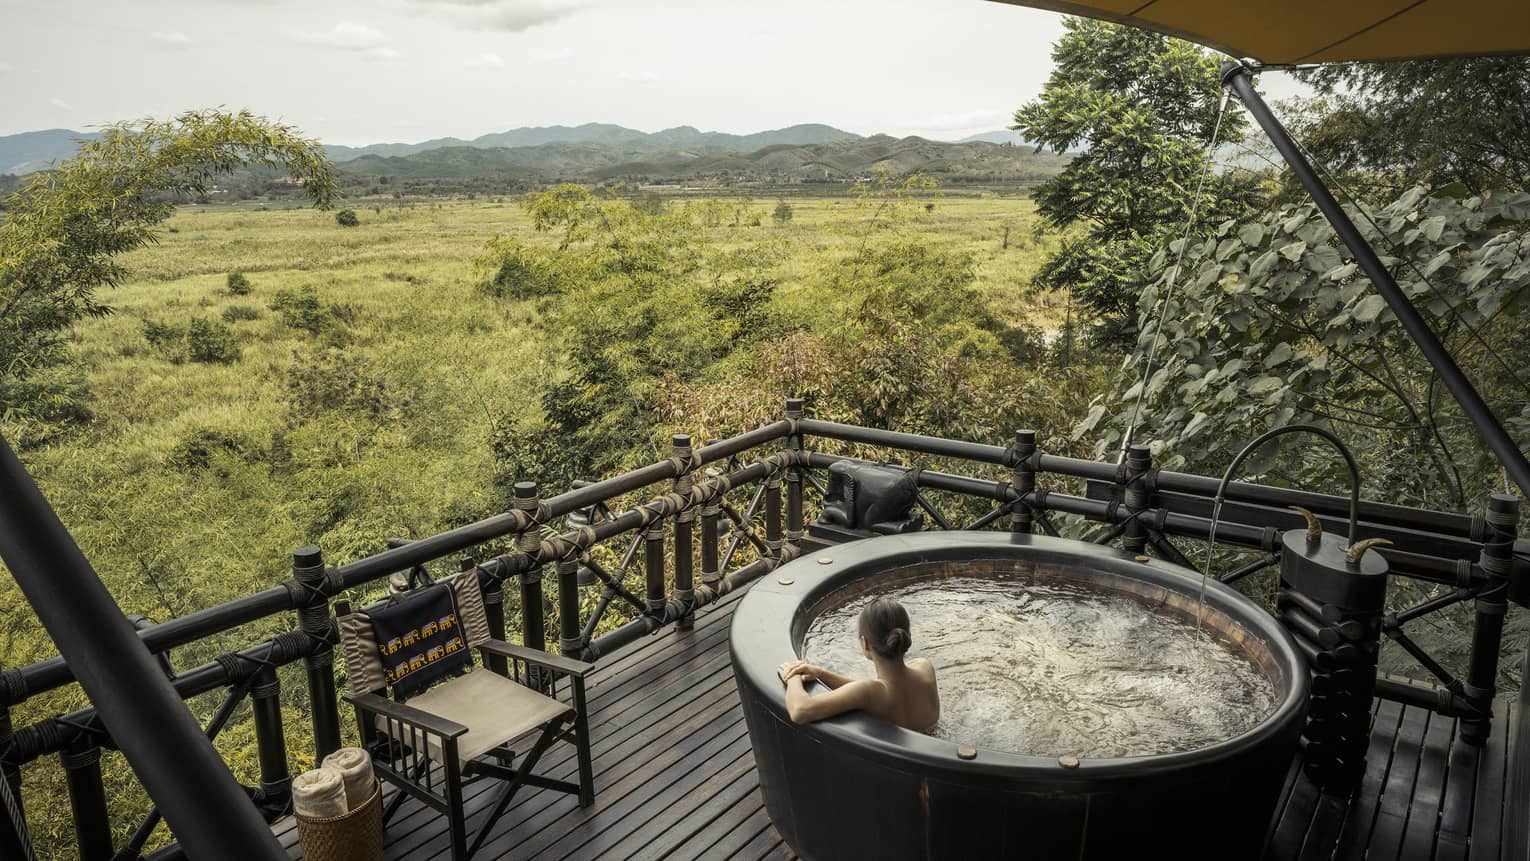 Woman wades in large round hot tub on wood deck overlooking green field, mountains